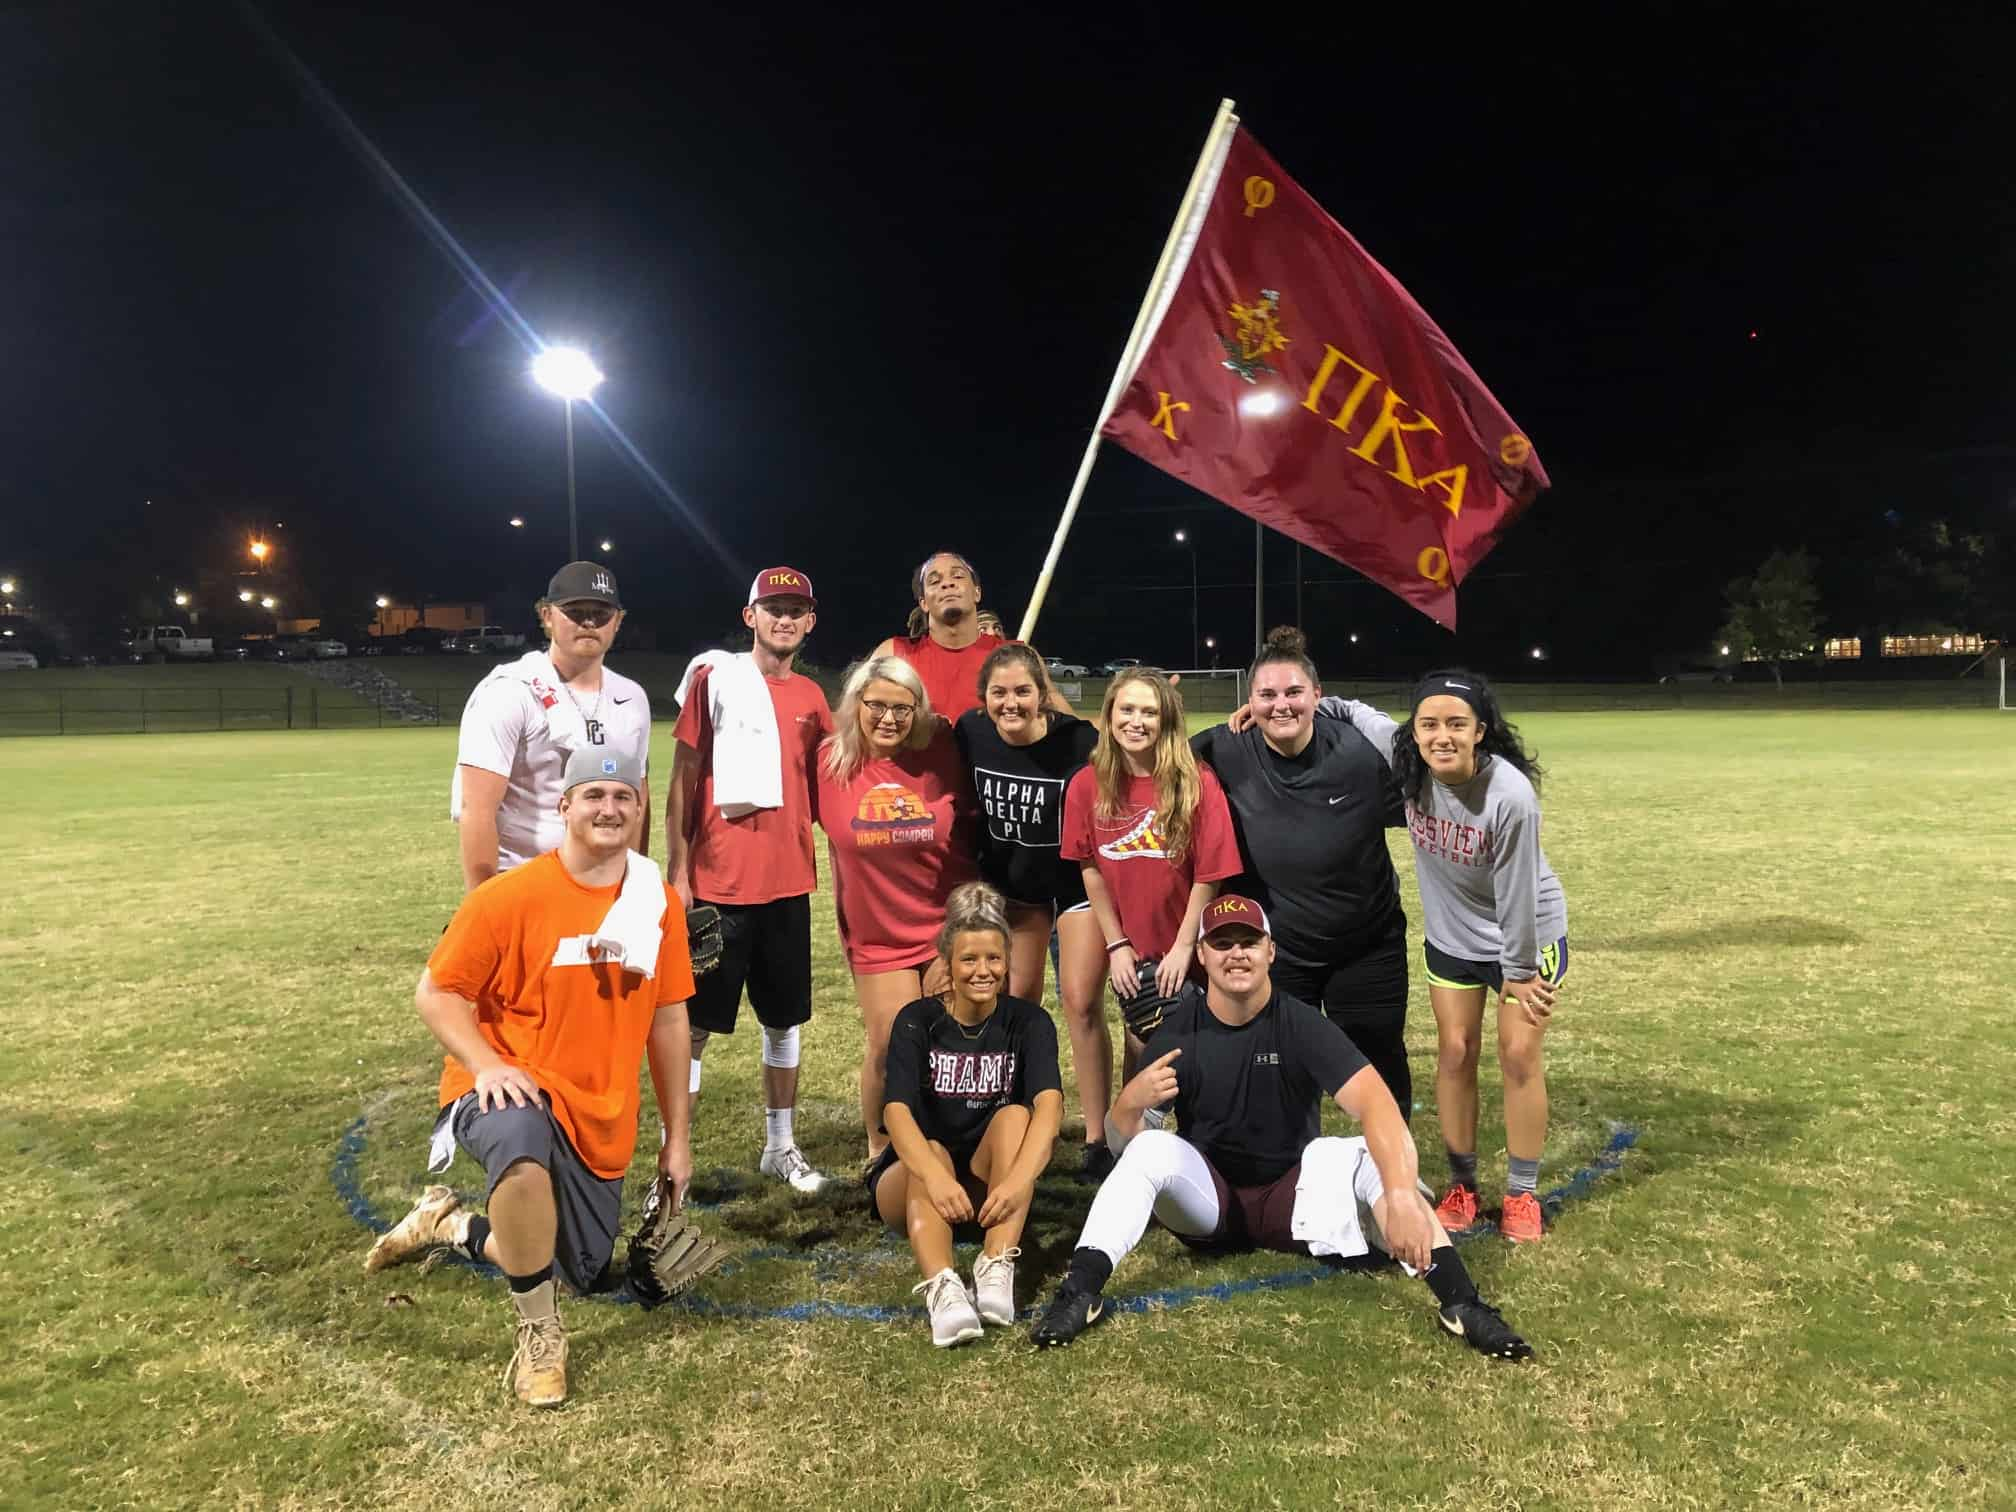 Students pose after being crowned champions of the 2019 fall softball intramural league